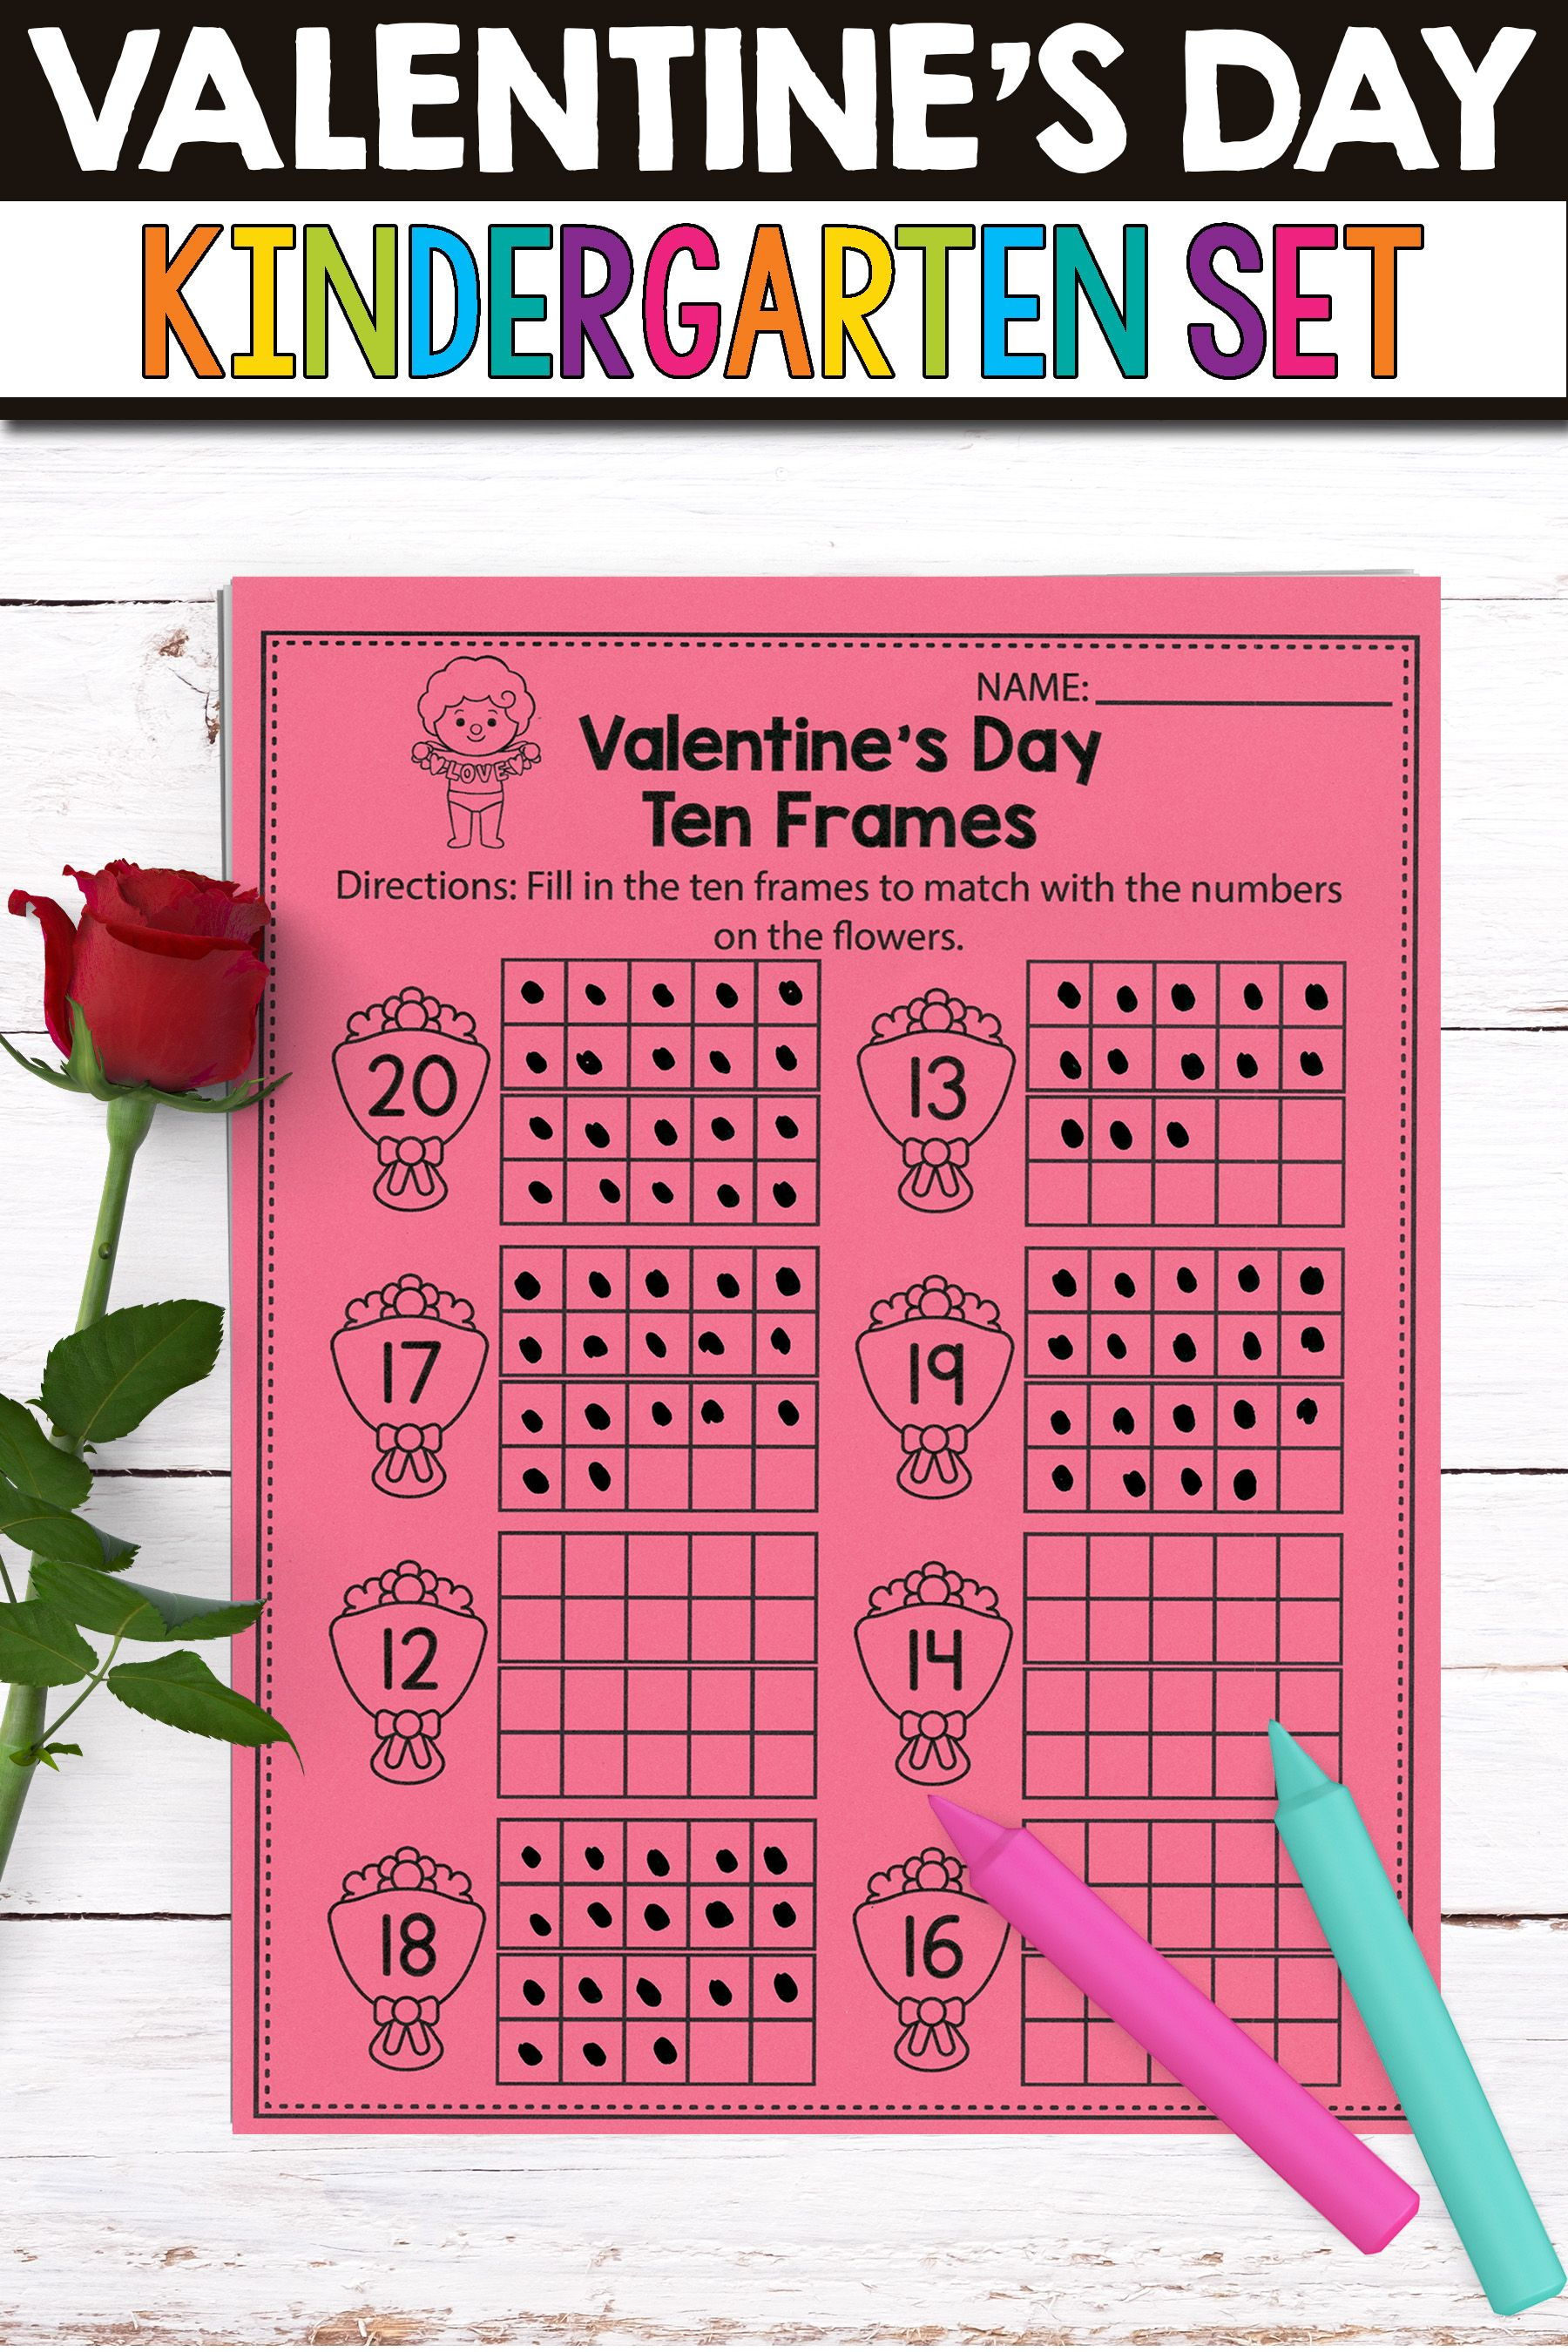 Fun Valentine Worksheets Math Activities And Worksheets For Kindergarten Kids That Are Common